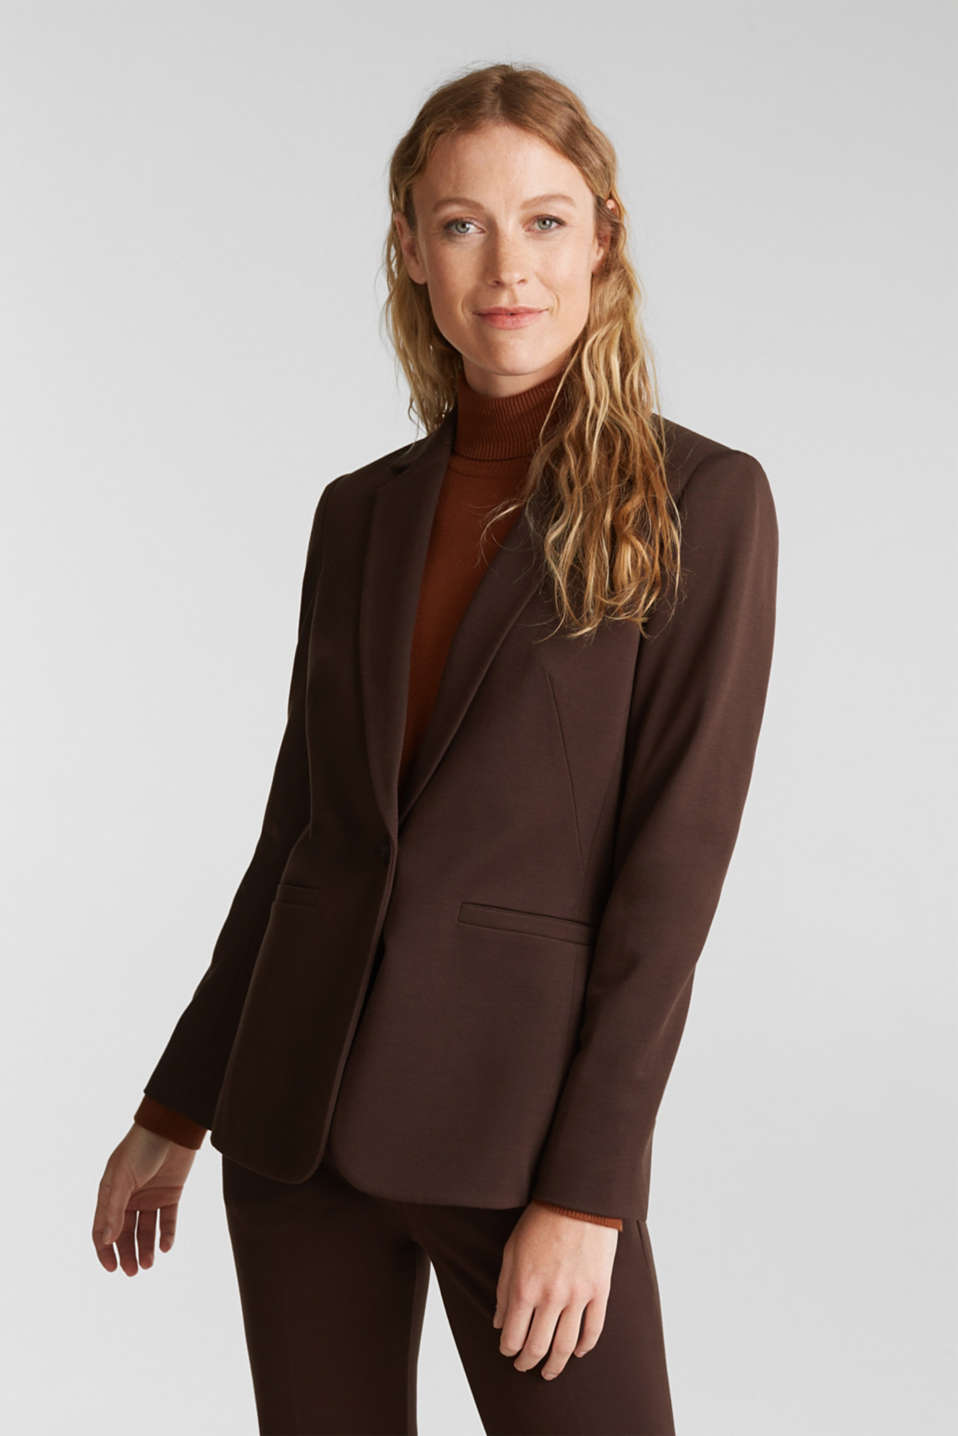 Esprit - Jersey blazer with stretch for comfort